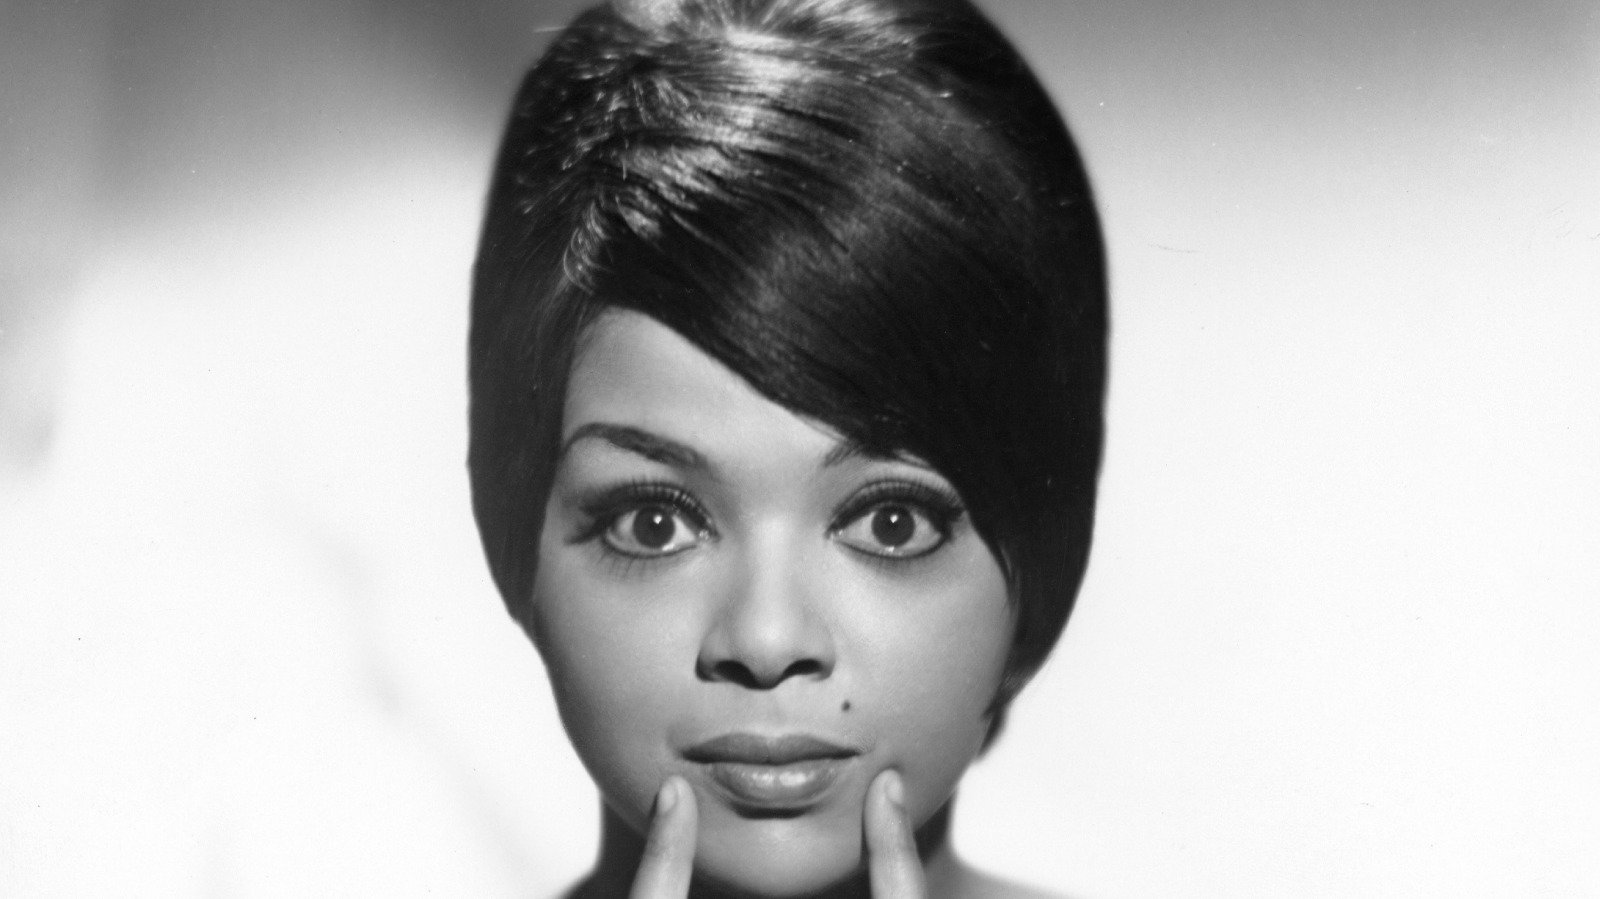 Tragic Details About Tammi Terrell's Life